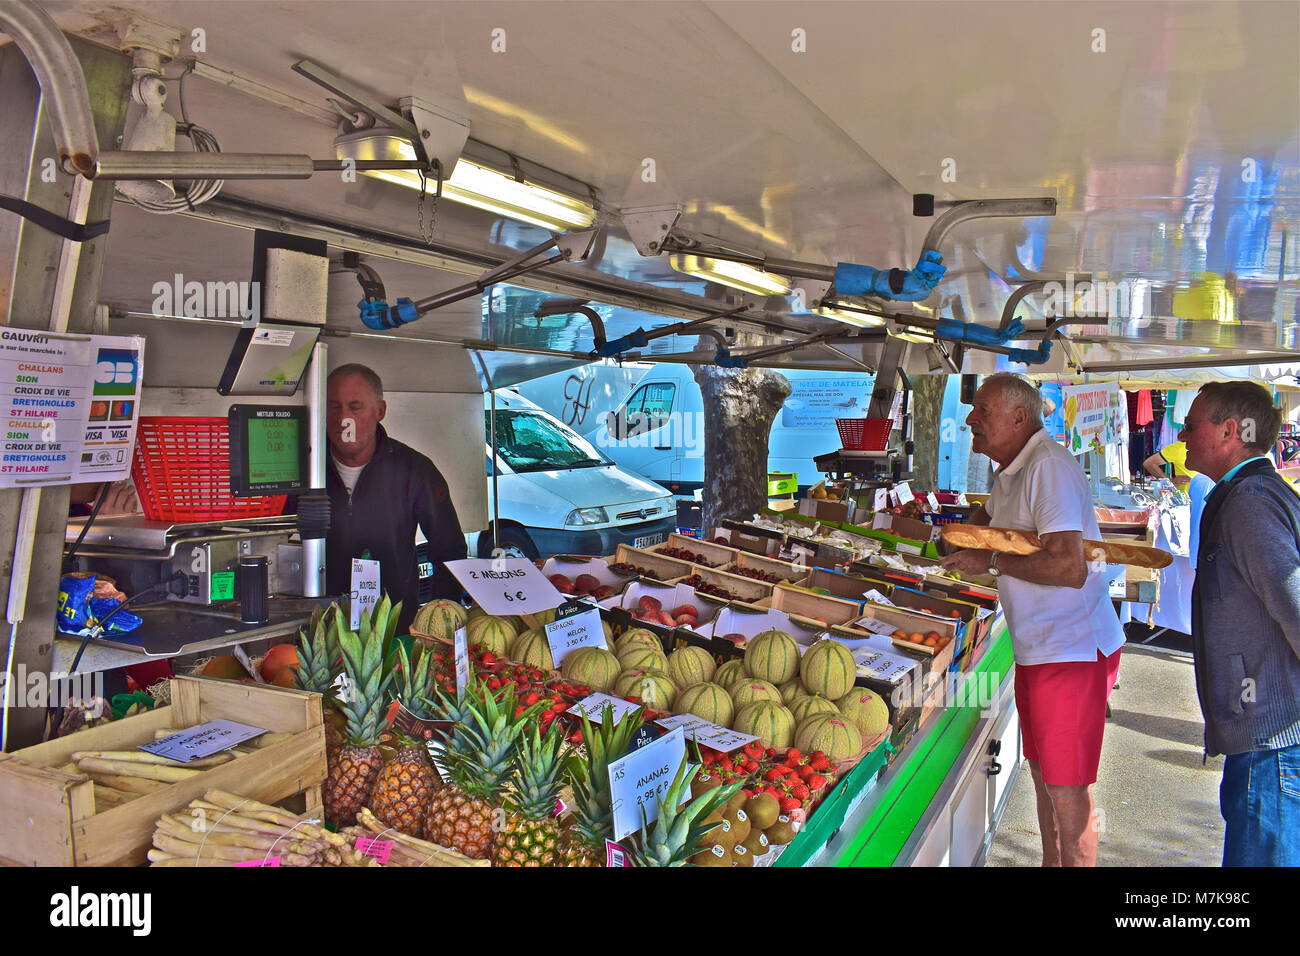 Frenchman at fruit stall in the local market at Bretignole sur Mer in the Vendée region of France. - Stock Image